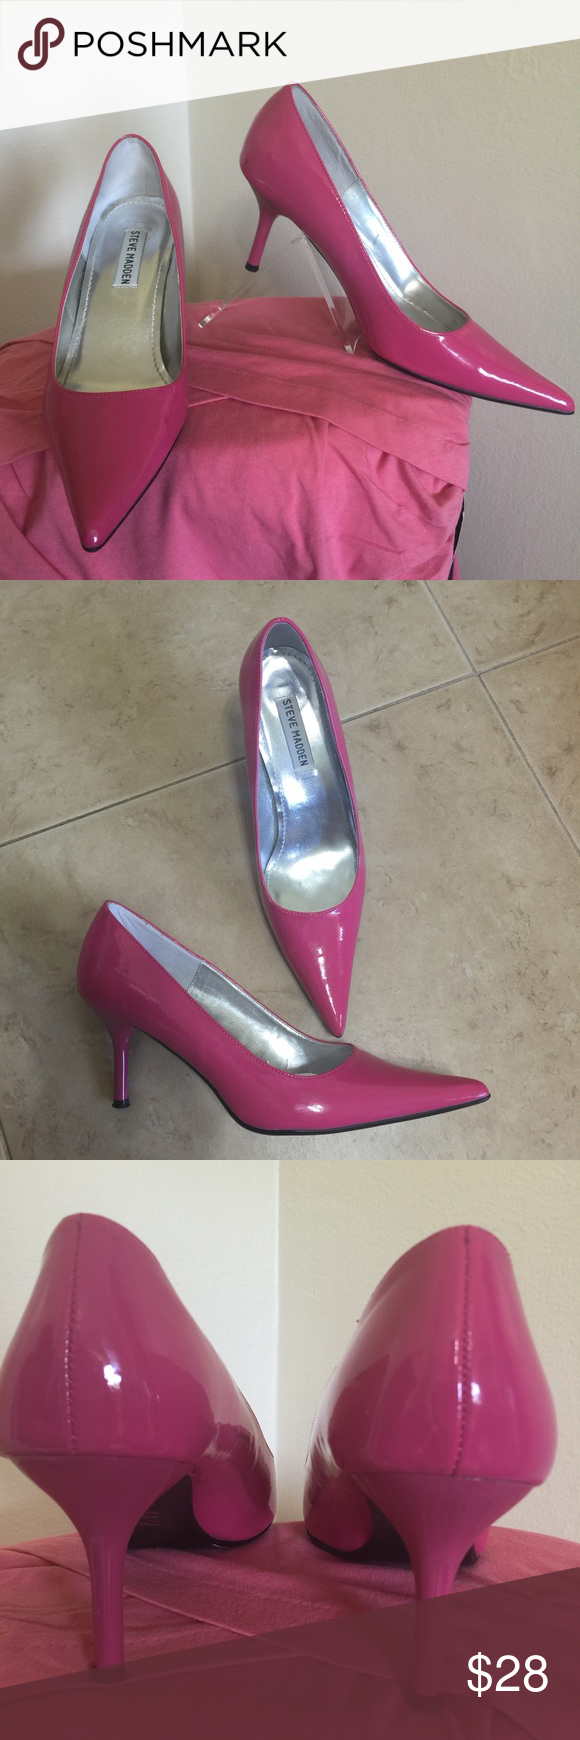 "Steve Madden Hot Pink Patent Pointy Pump 7 Classie Label- Steve Madden Style- ""Classie"" Classic pointy toe Pumps. They are Bright Hot Barbie Pink patent leather. Super Sexy!   Size- 7 Heel Height- 3.25 ( walkable!) Color-Hot Pink  Fabric- Manmade Patent Leather Condition-Worn once, Excellent Used Condition EUC , footbed, heels and heel tips are perfect, small rub spot on outside toe, shown in pics, not noticeable while worn but priced accordingly  Origin-China Steve Madden Shoes Heels"